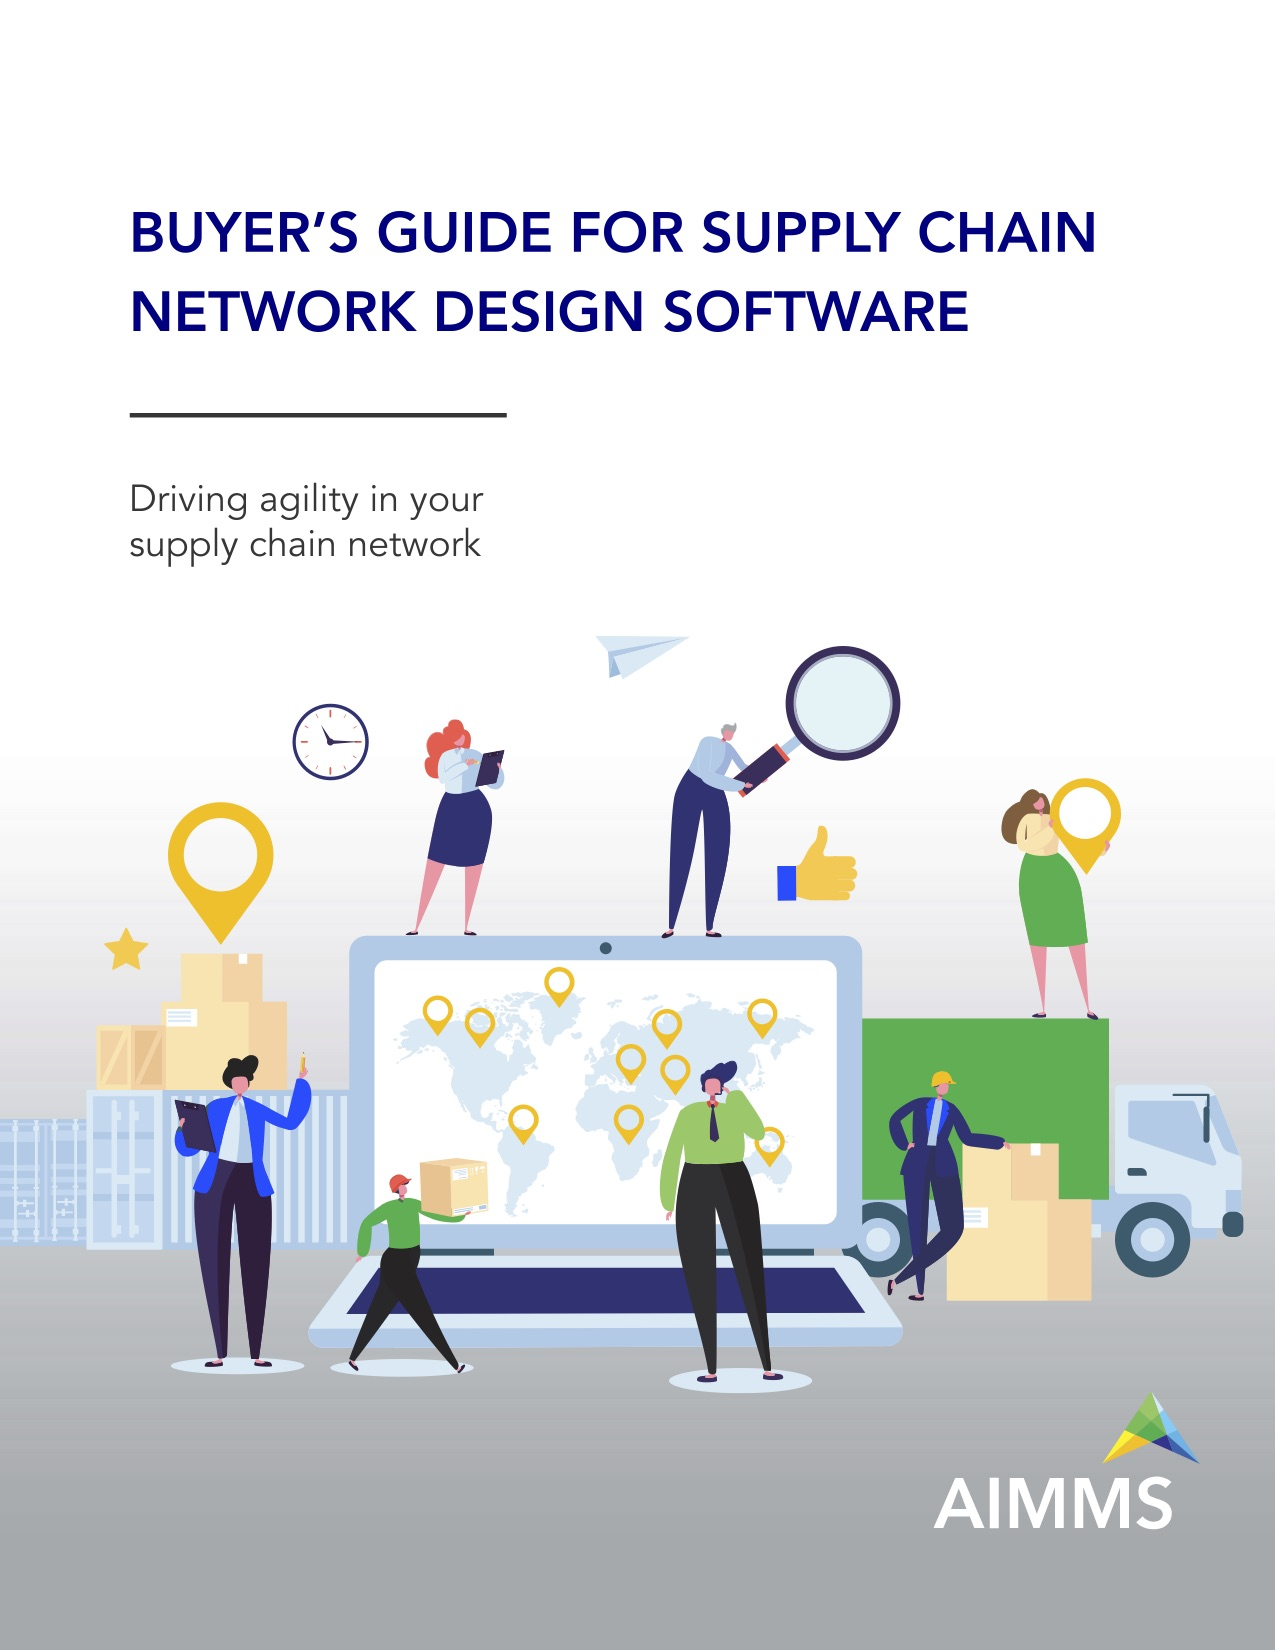 AIMMS-Buyers-Guide-Network-Design